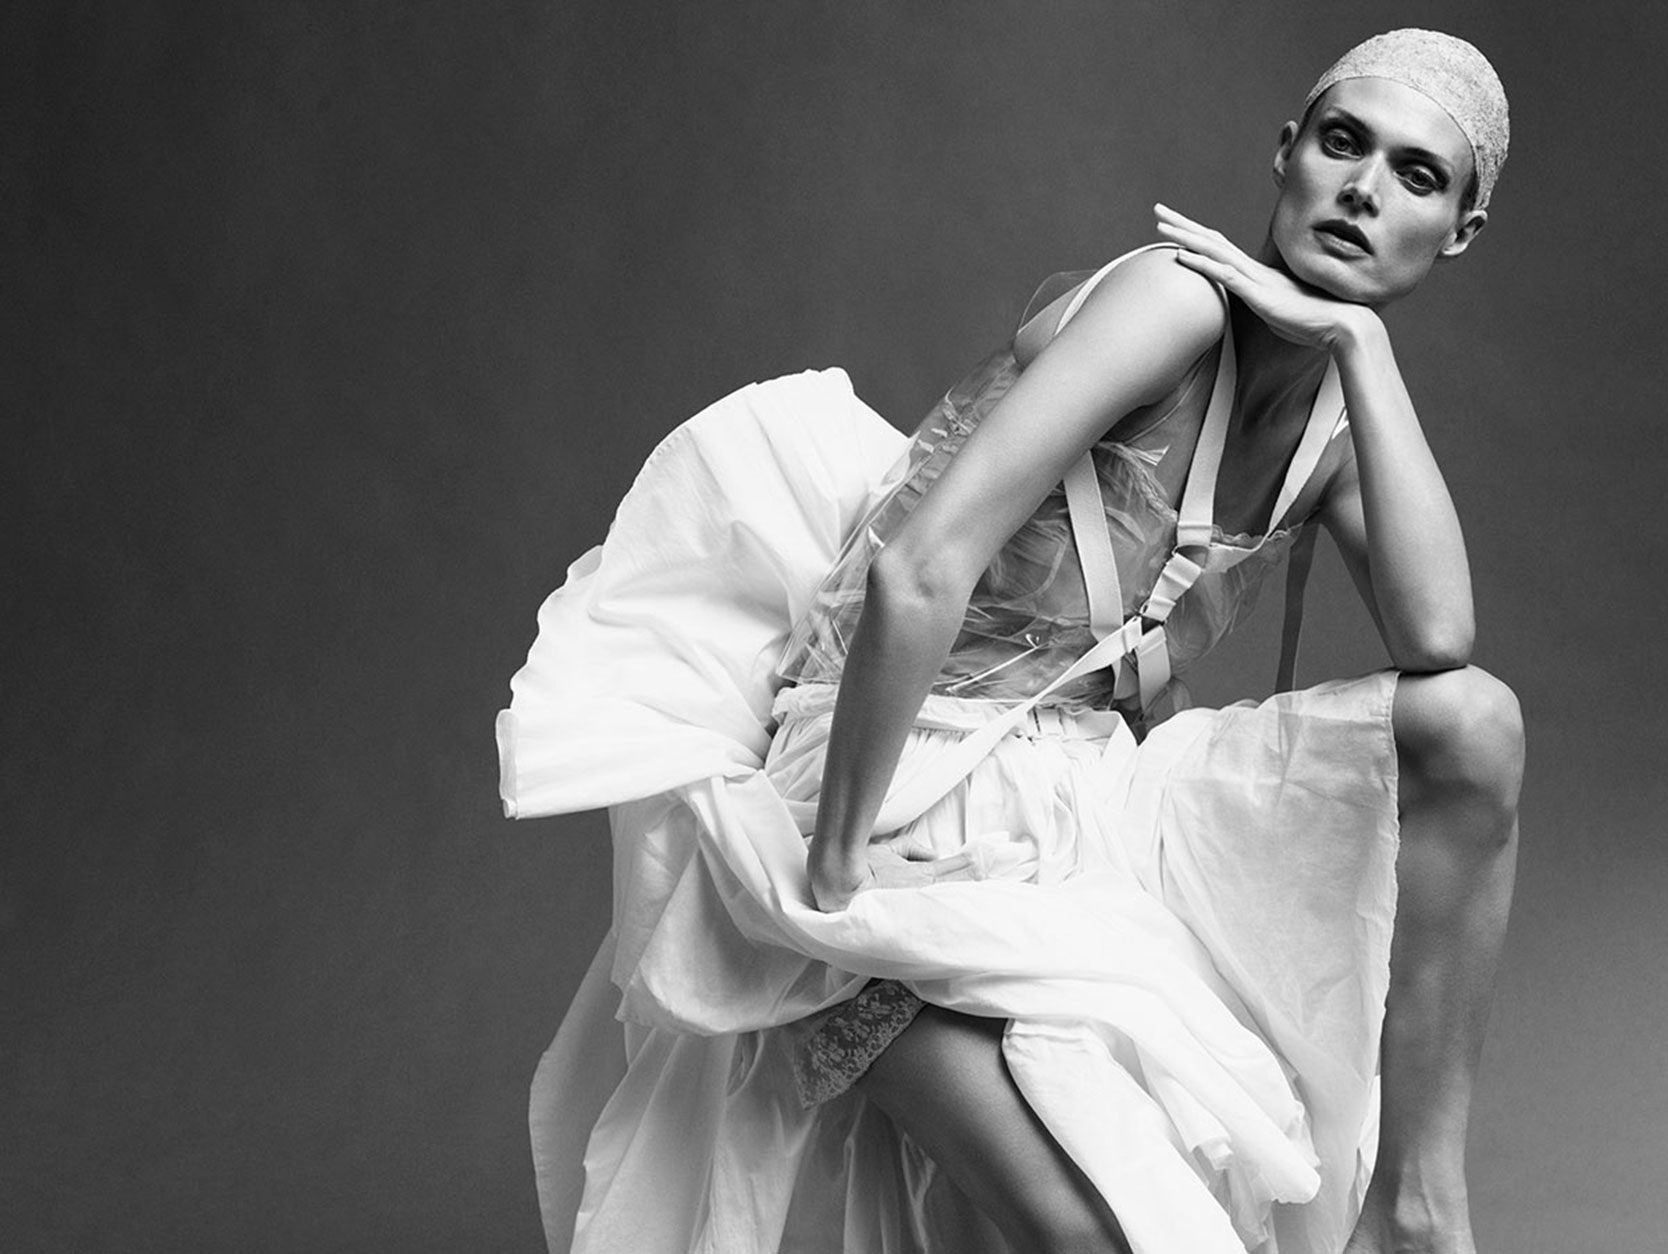 malgosia-bela-by-iango-henzi-and-luigi-murenu-for-exhibition-magazine-spring-summer-2016-13